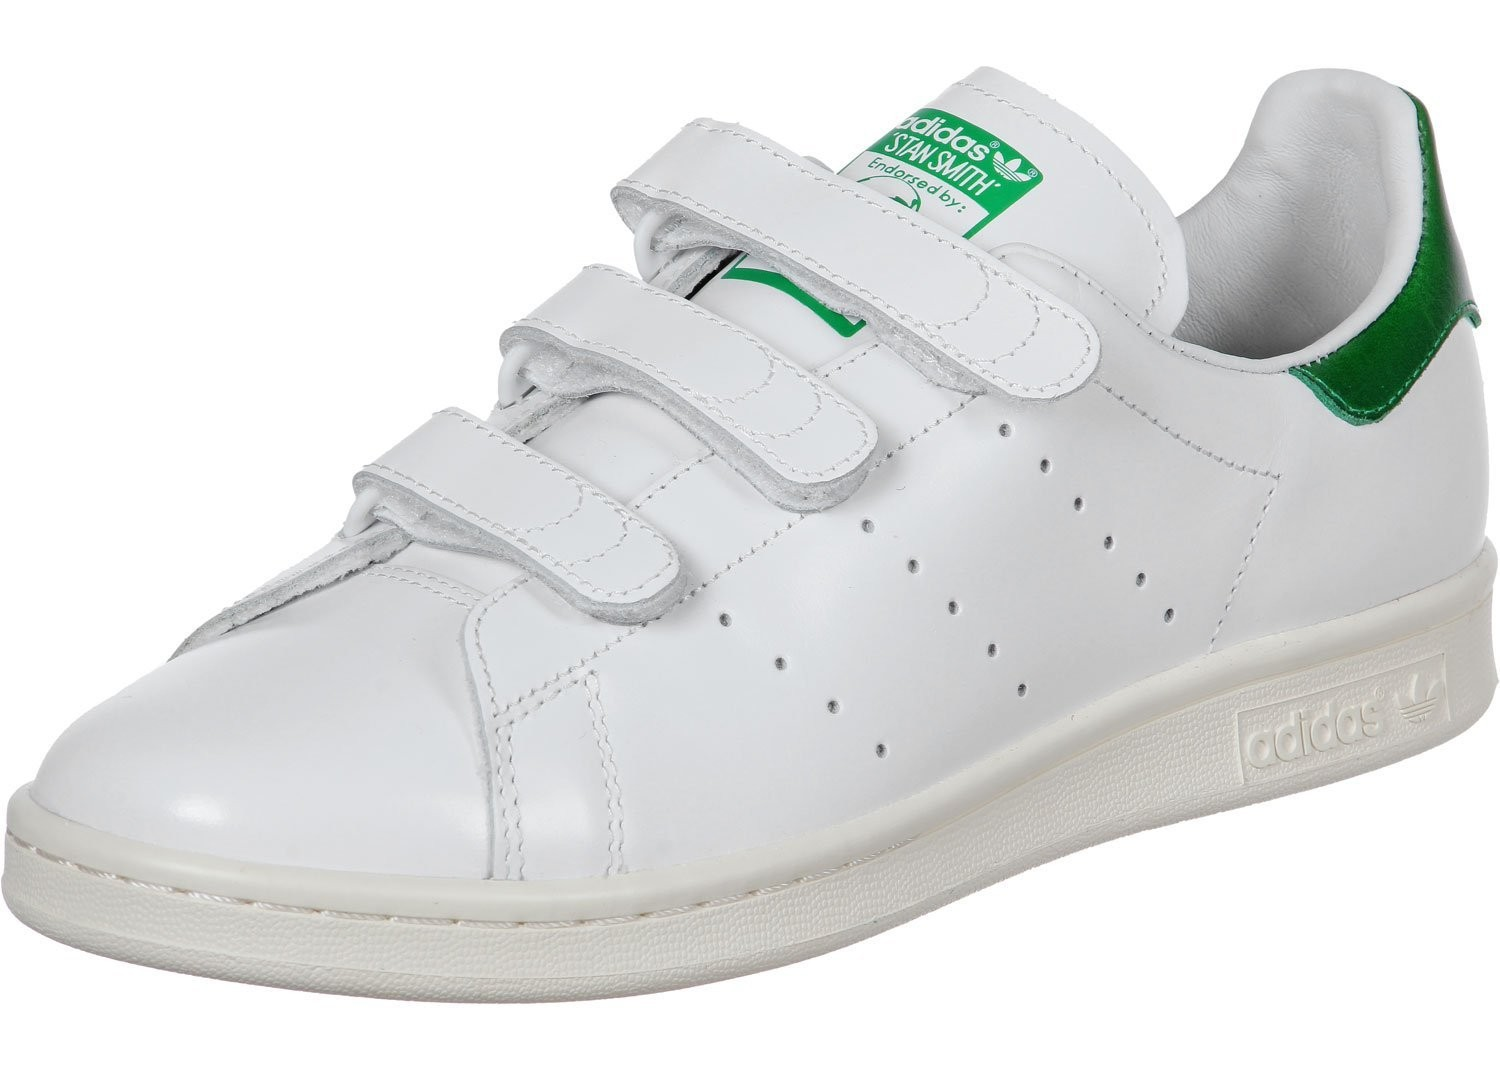 stan smith scratch homme pas cher,ADIDAS ORIGINALS Baskets